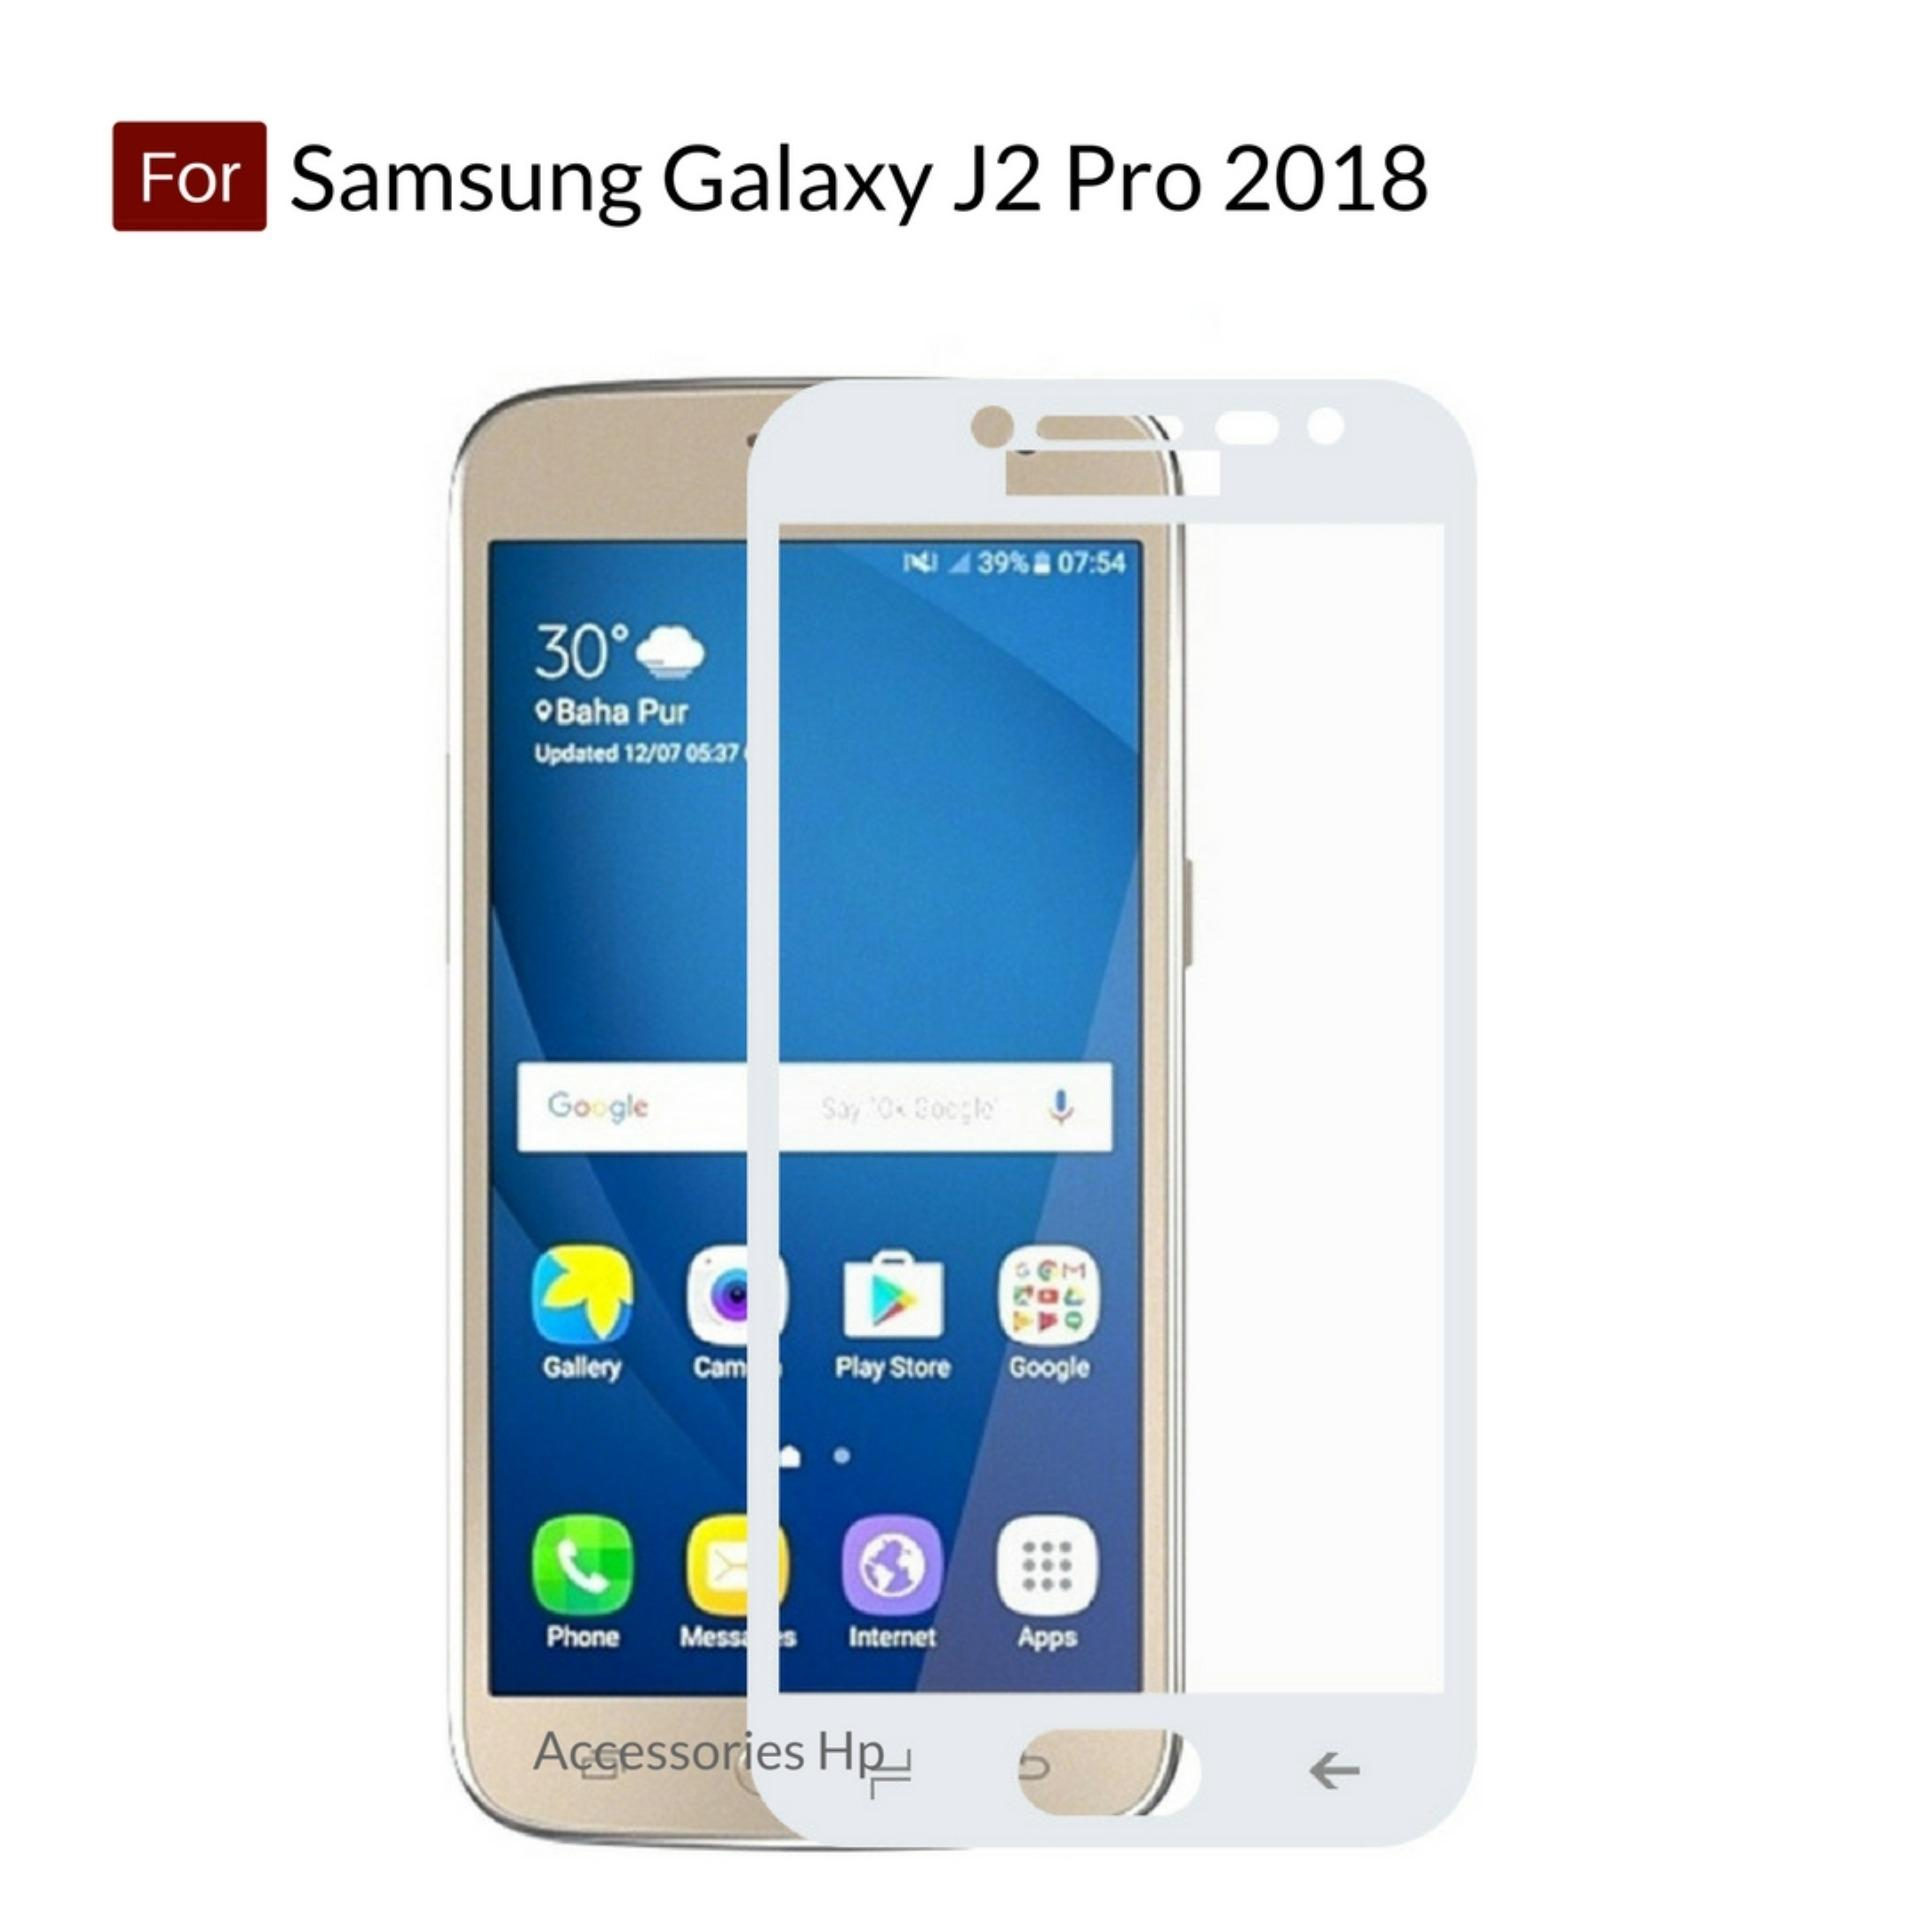 Accessories Hp Full Cover Tempered Glass Warna Screen Protector for Samsung Galaxy J2 Pro 2018 - White